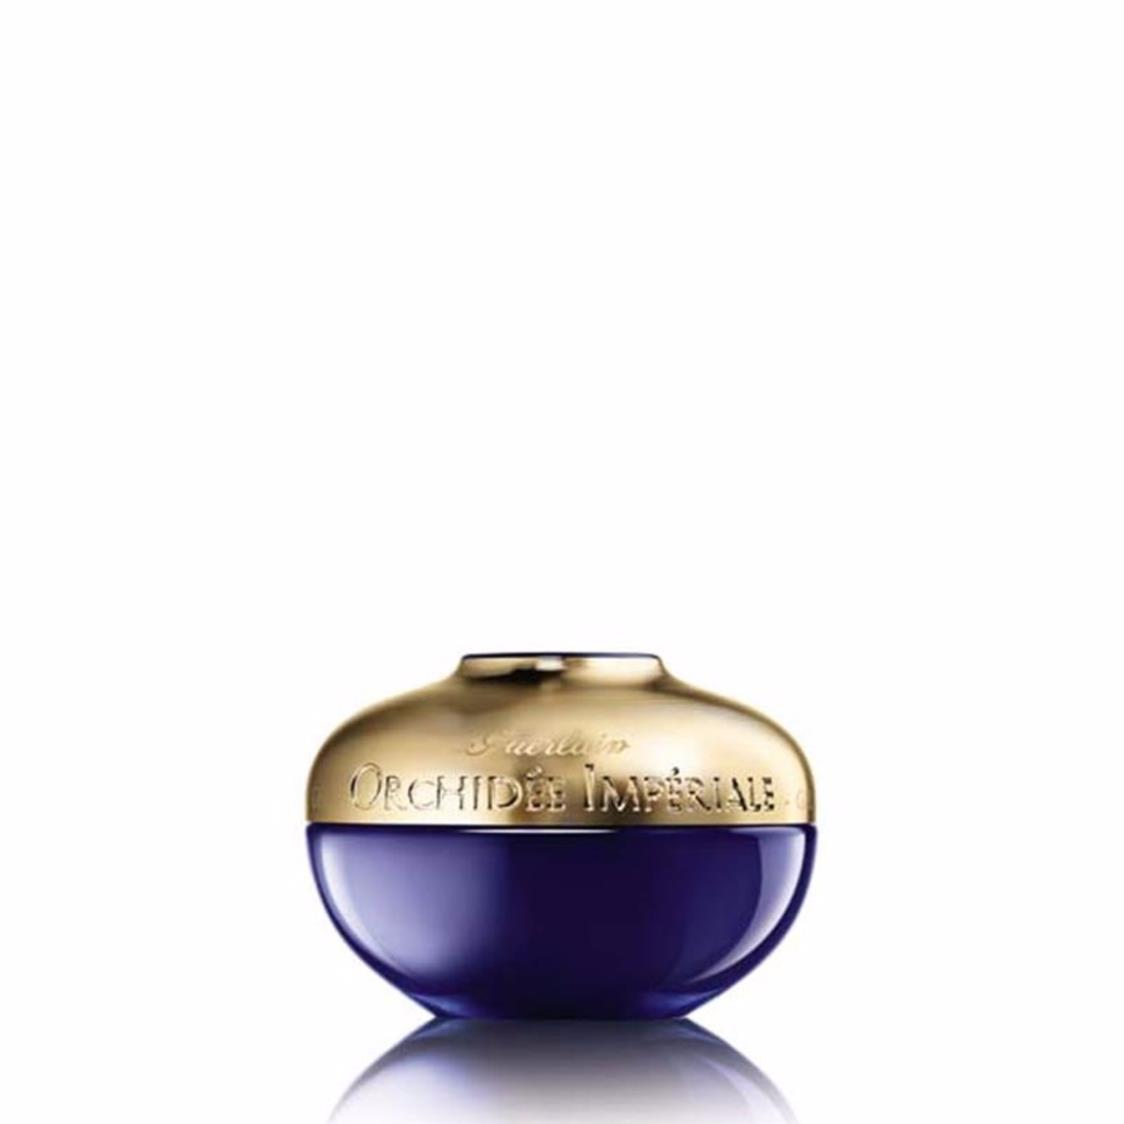 Orchide Impriale The Gel Cream 30ml